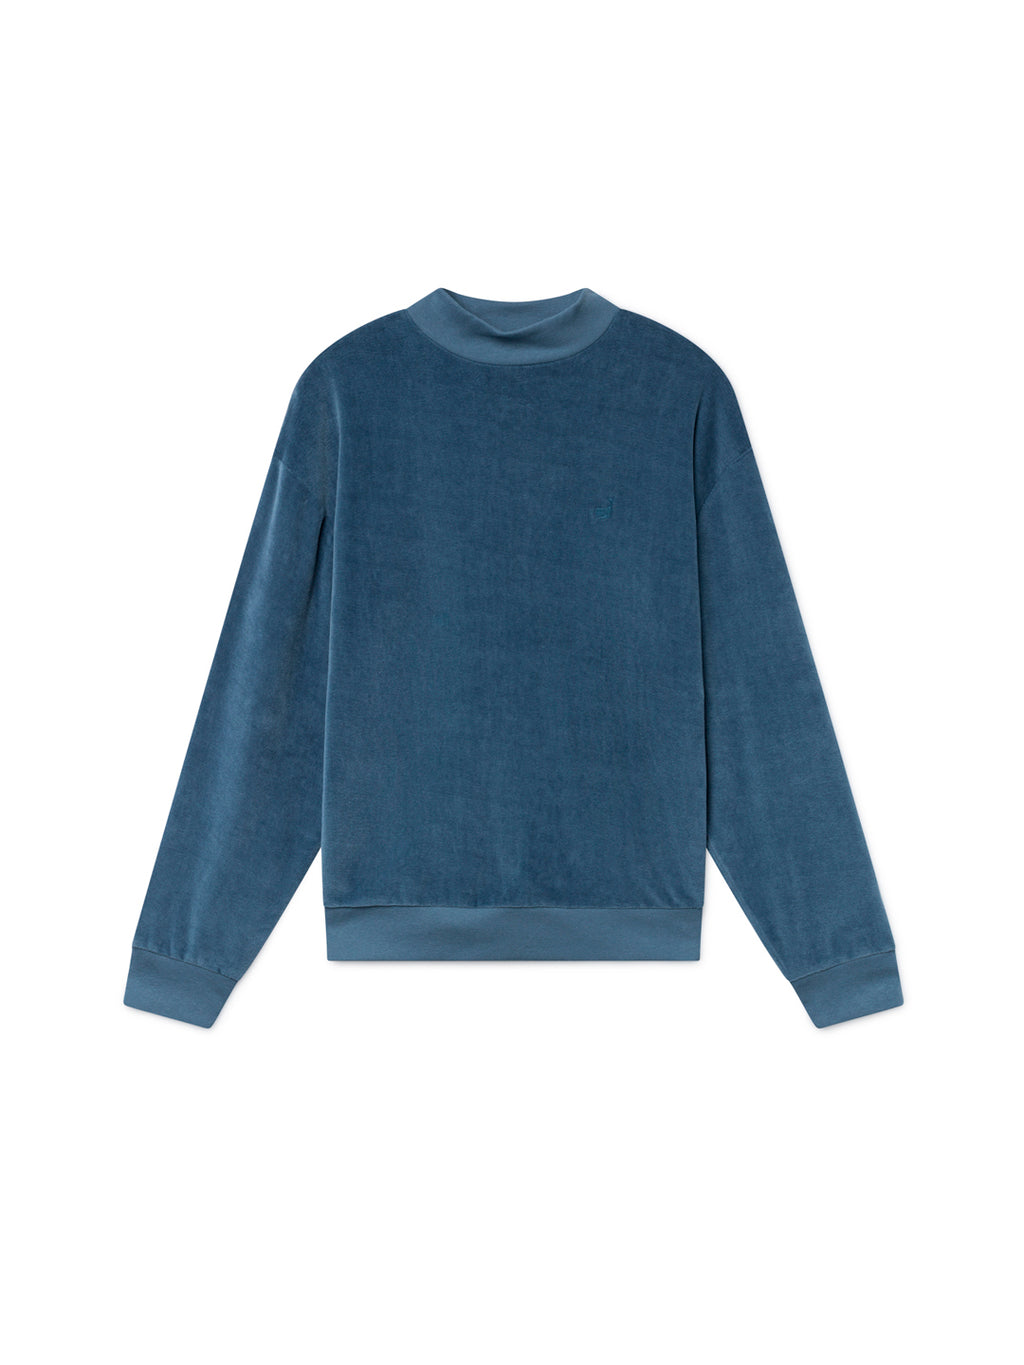 TWOTHIRDS Sweat: Kerguelen - Dusty Blue